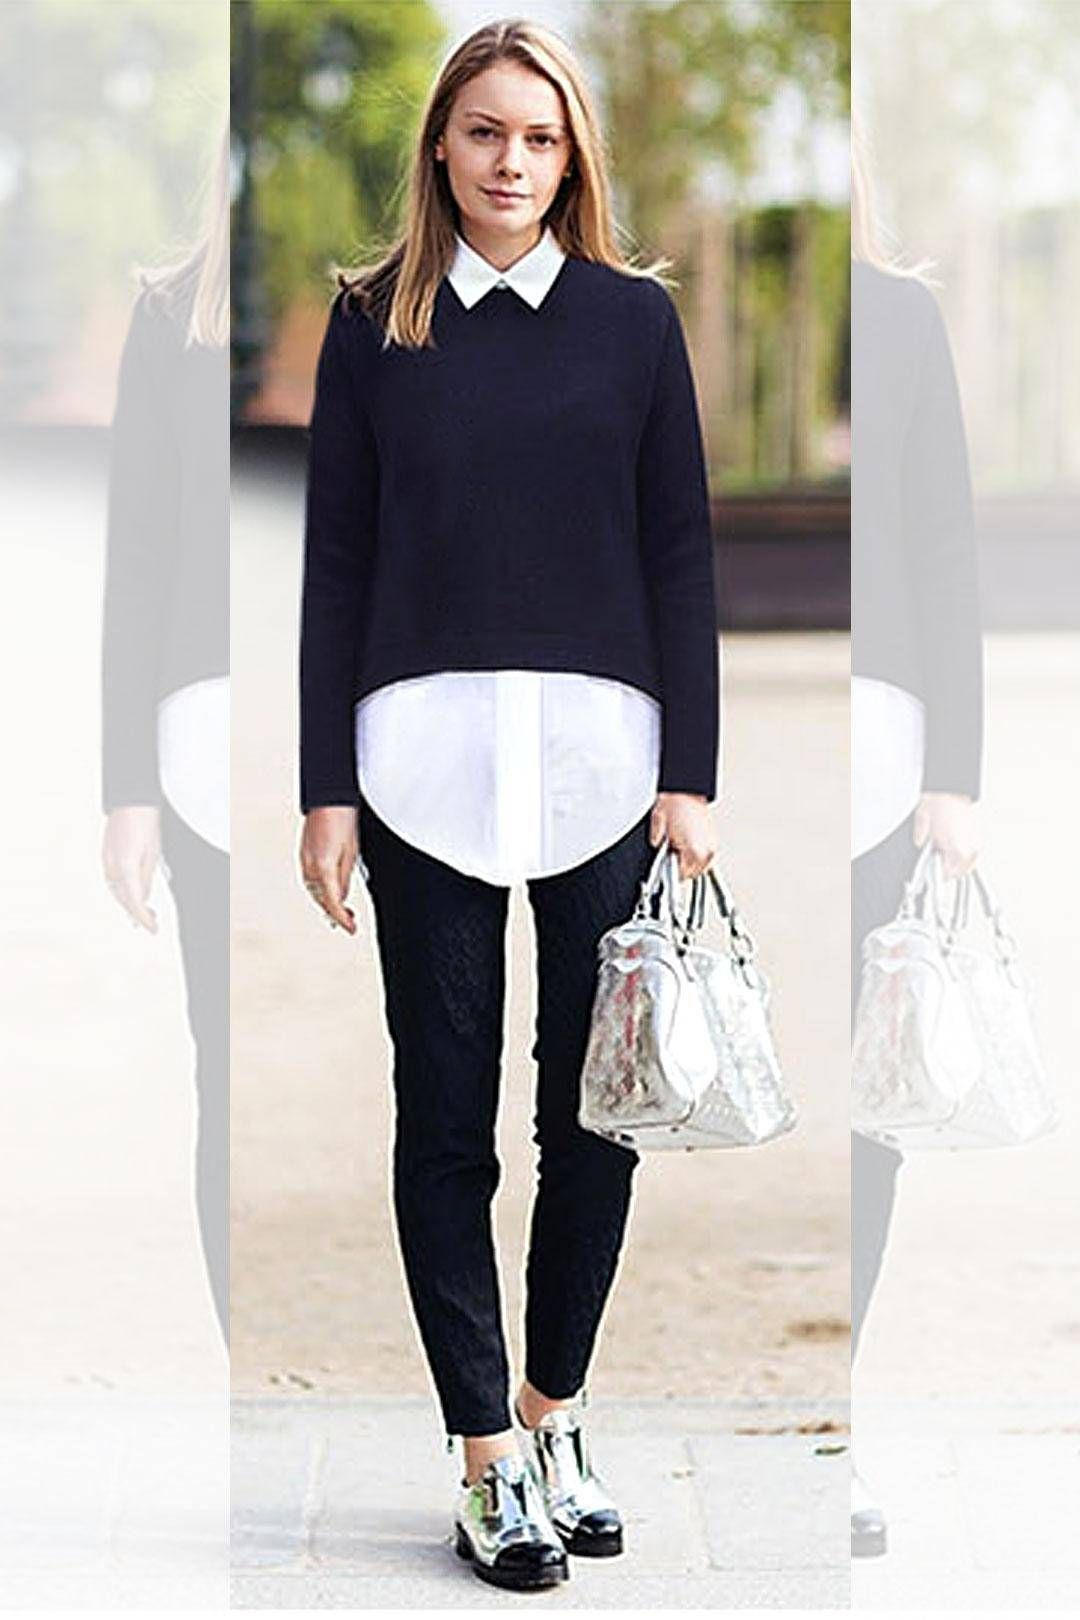 This blouse features dual-tone, like two pieces. Accented with white collar and hem and back zip closure,it completes the casual look with an elegant touch. Team it with a flats and a hand bag.